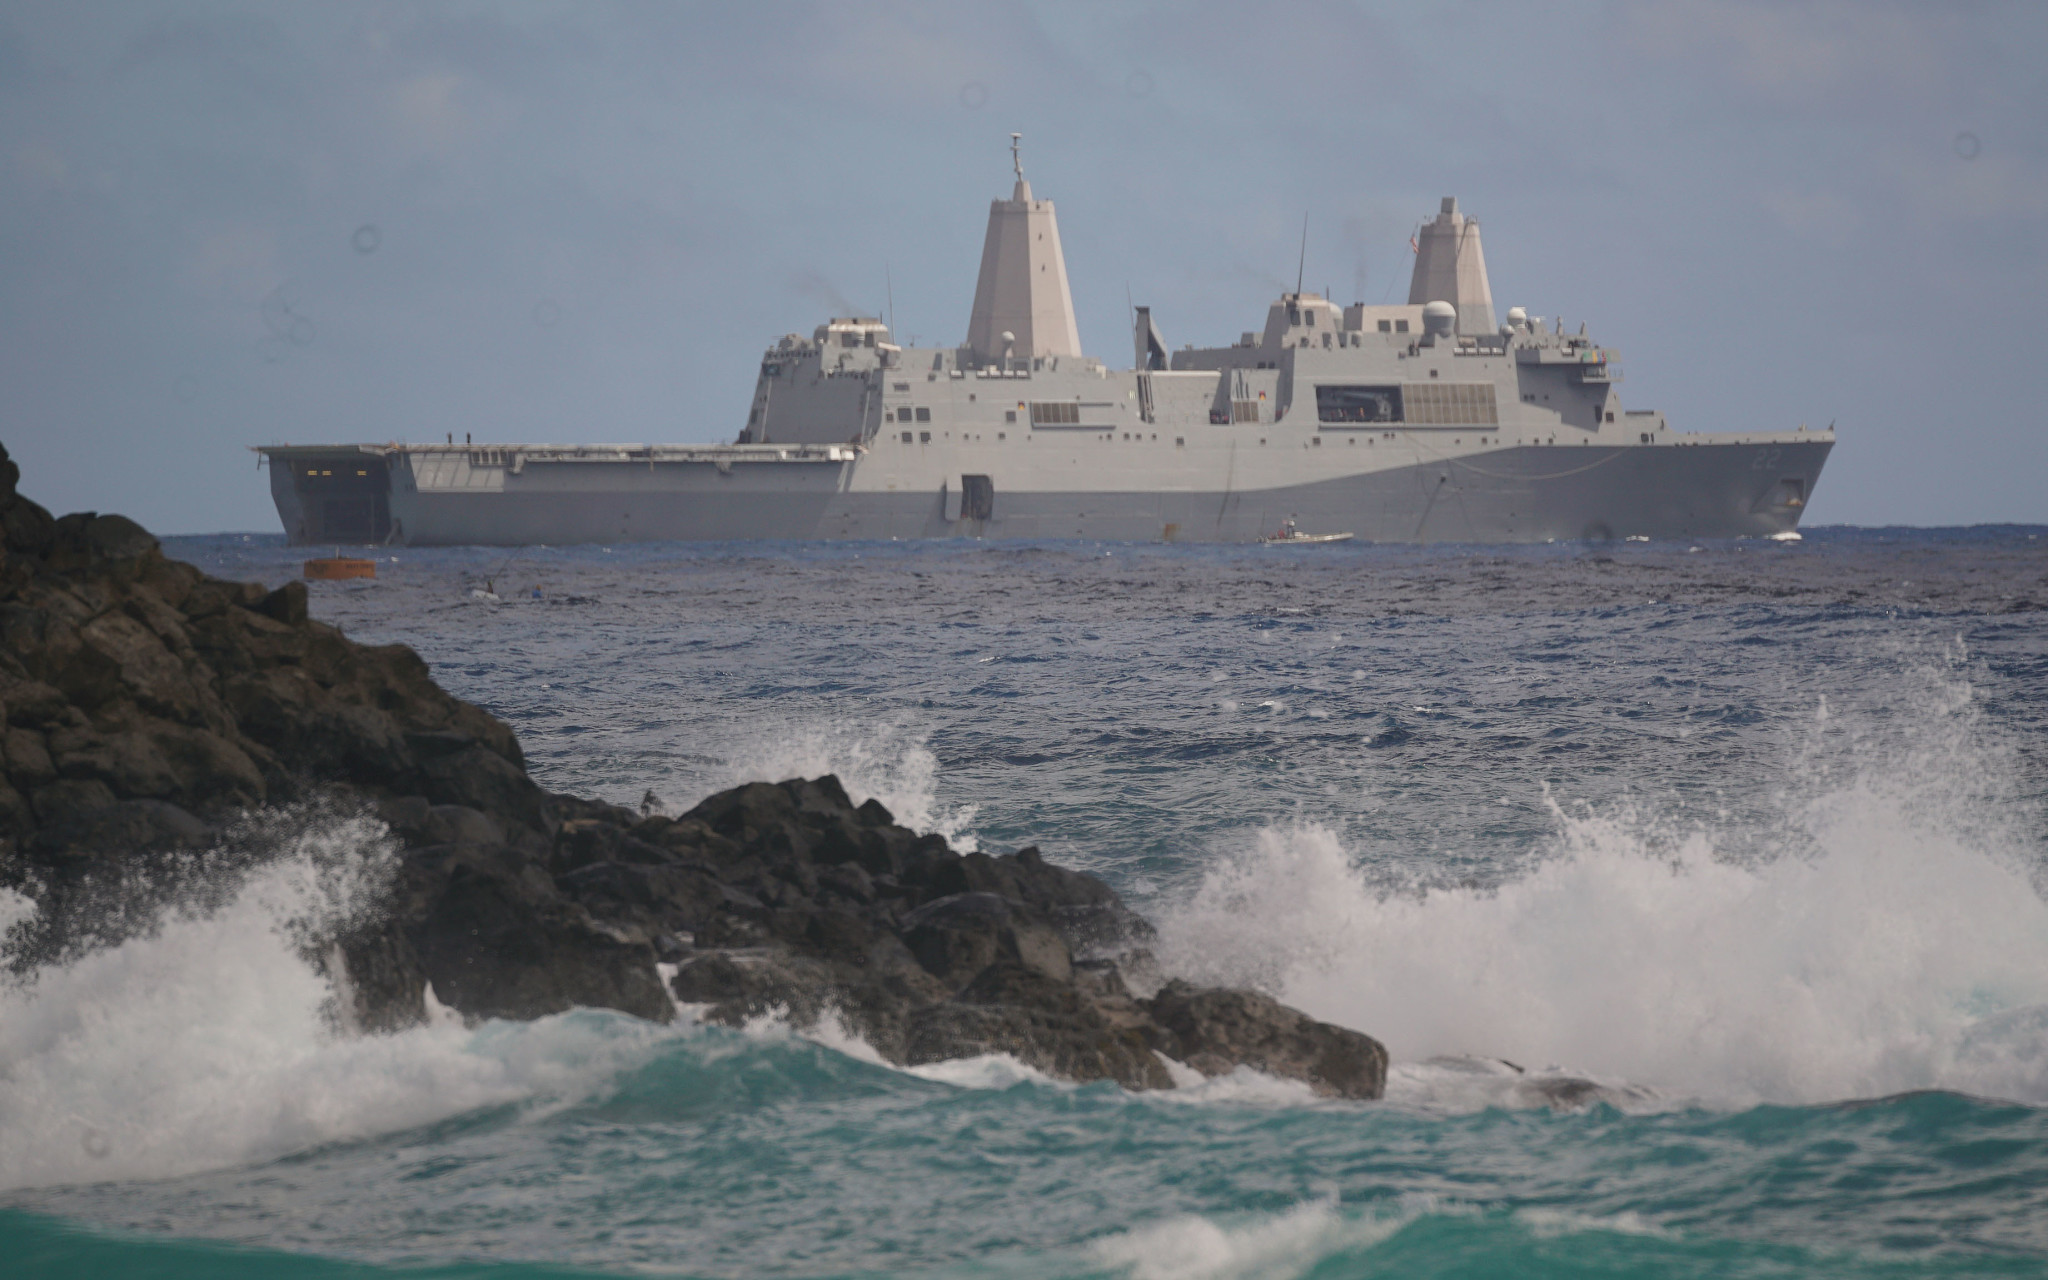 <p>The USS San Diego amphibious transport dock floats offshore Marine Corps Base Hawaii last weekend. Vesselsemerged from the ship's rear well deck to begin the assault on Pyramid Rock Beach in one of the final exercises of the 26-nation Rim of the Pacific war games.</p>